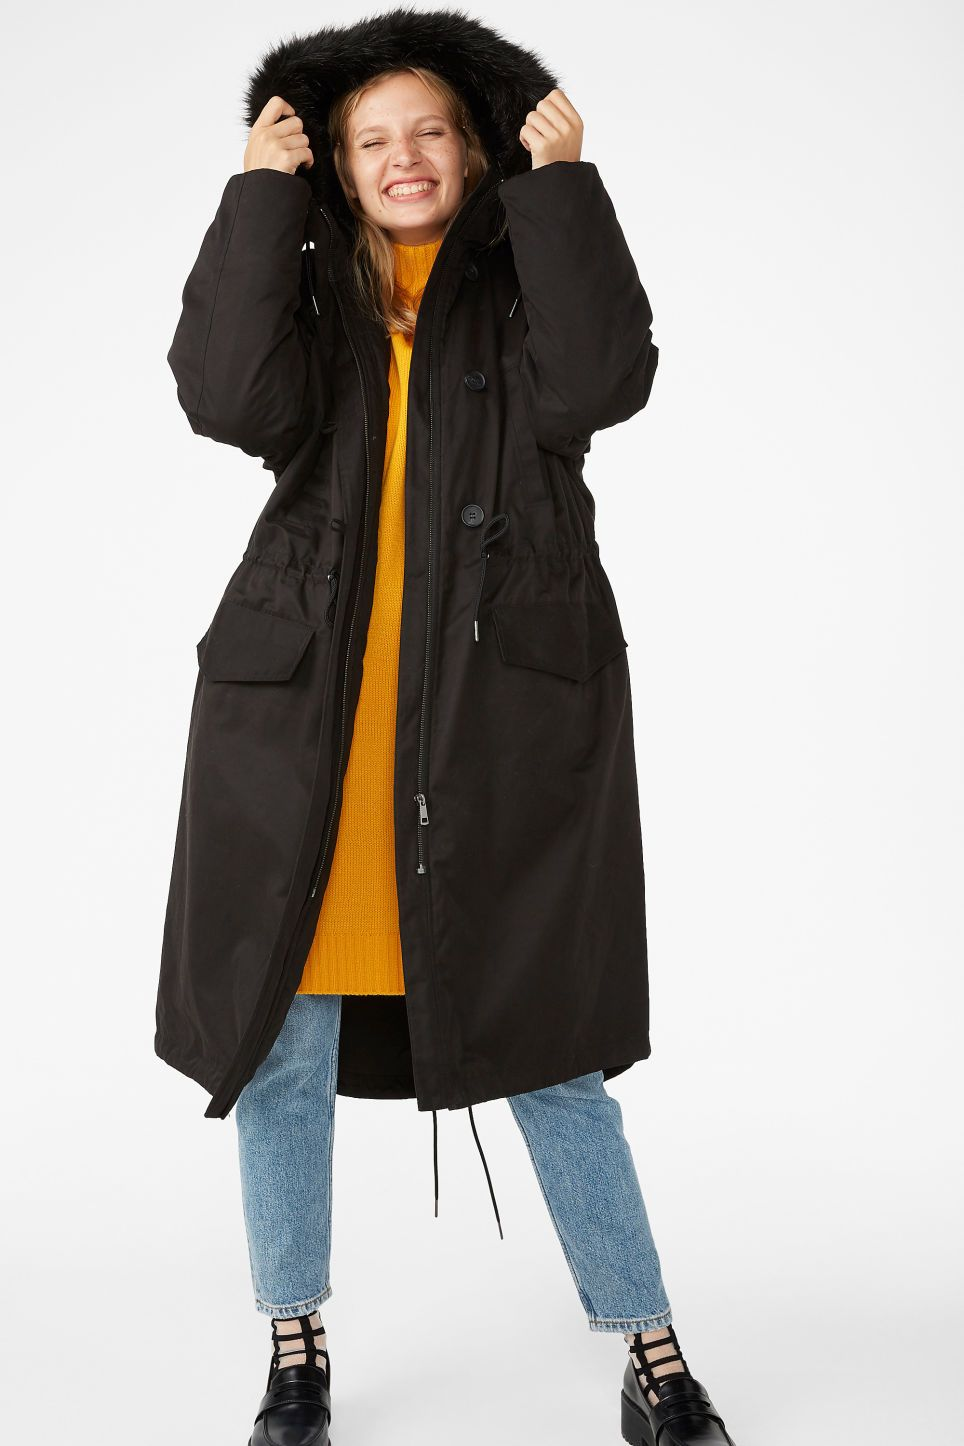 db9027bc2693 Monki padded parka coat in black - A long black padded parka coat with  ribbed cuffs